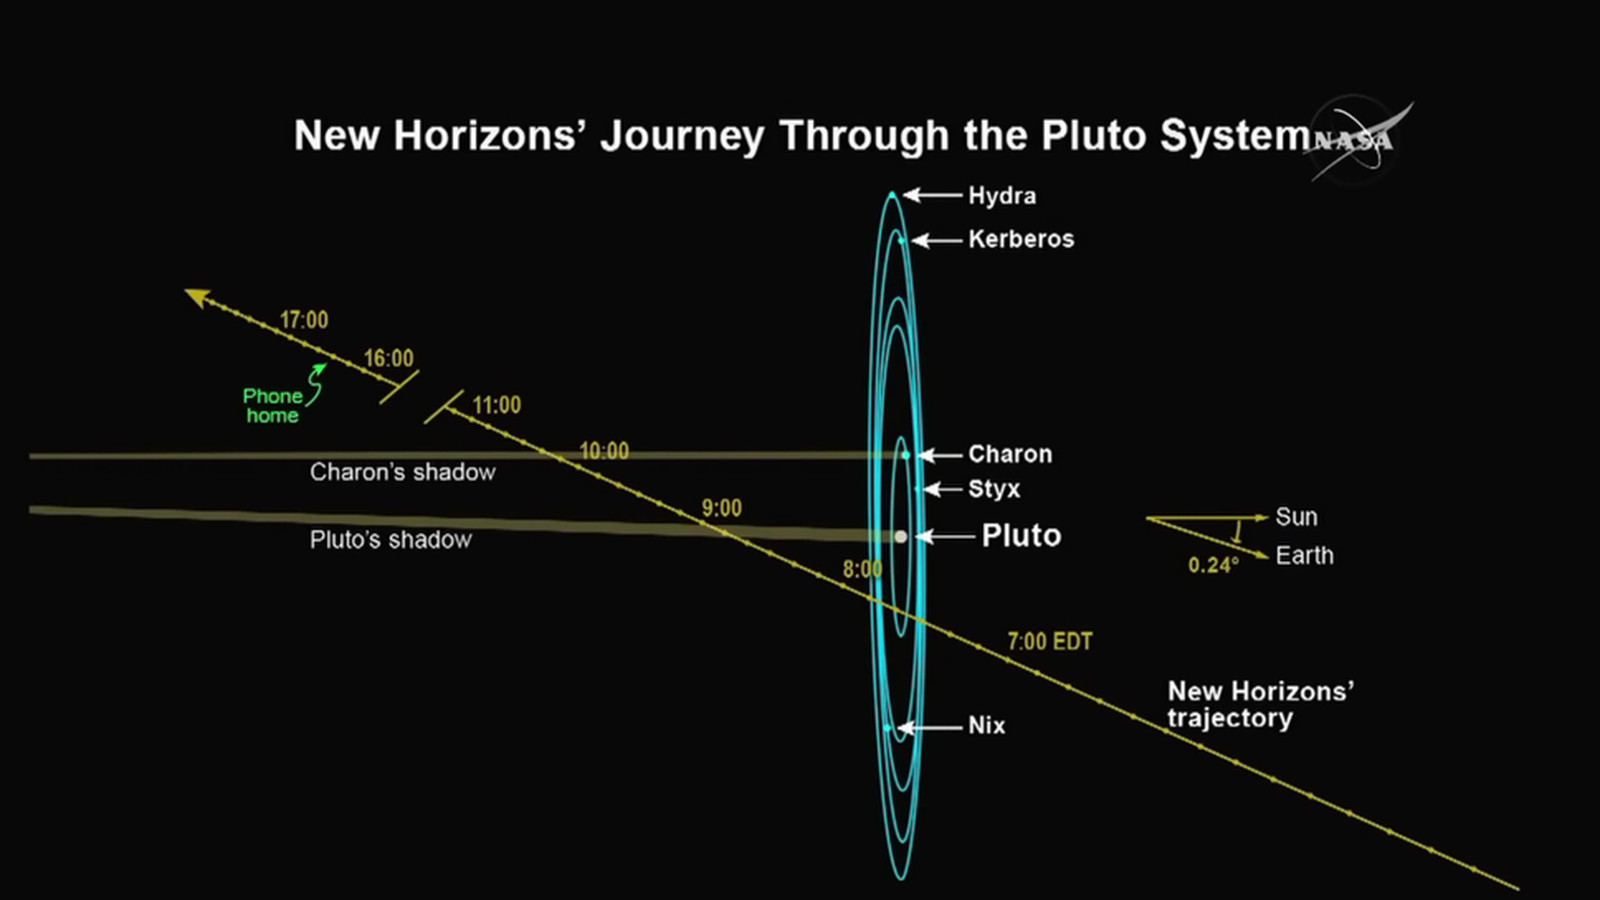 Kerberos Moon Of Plluto: The New Horizons Pluto Flyby: What To Expect